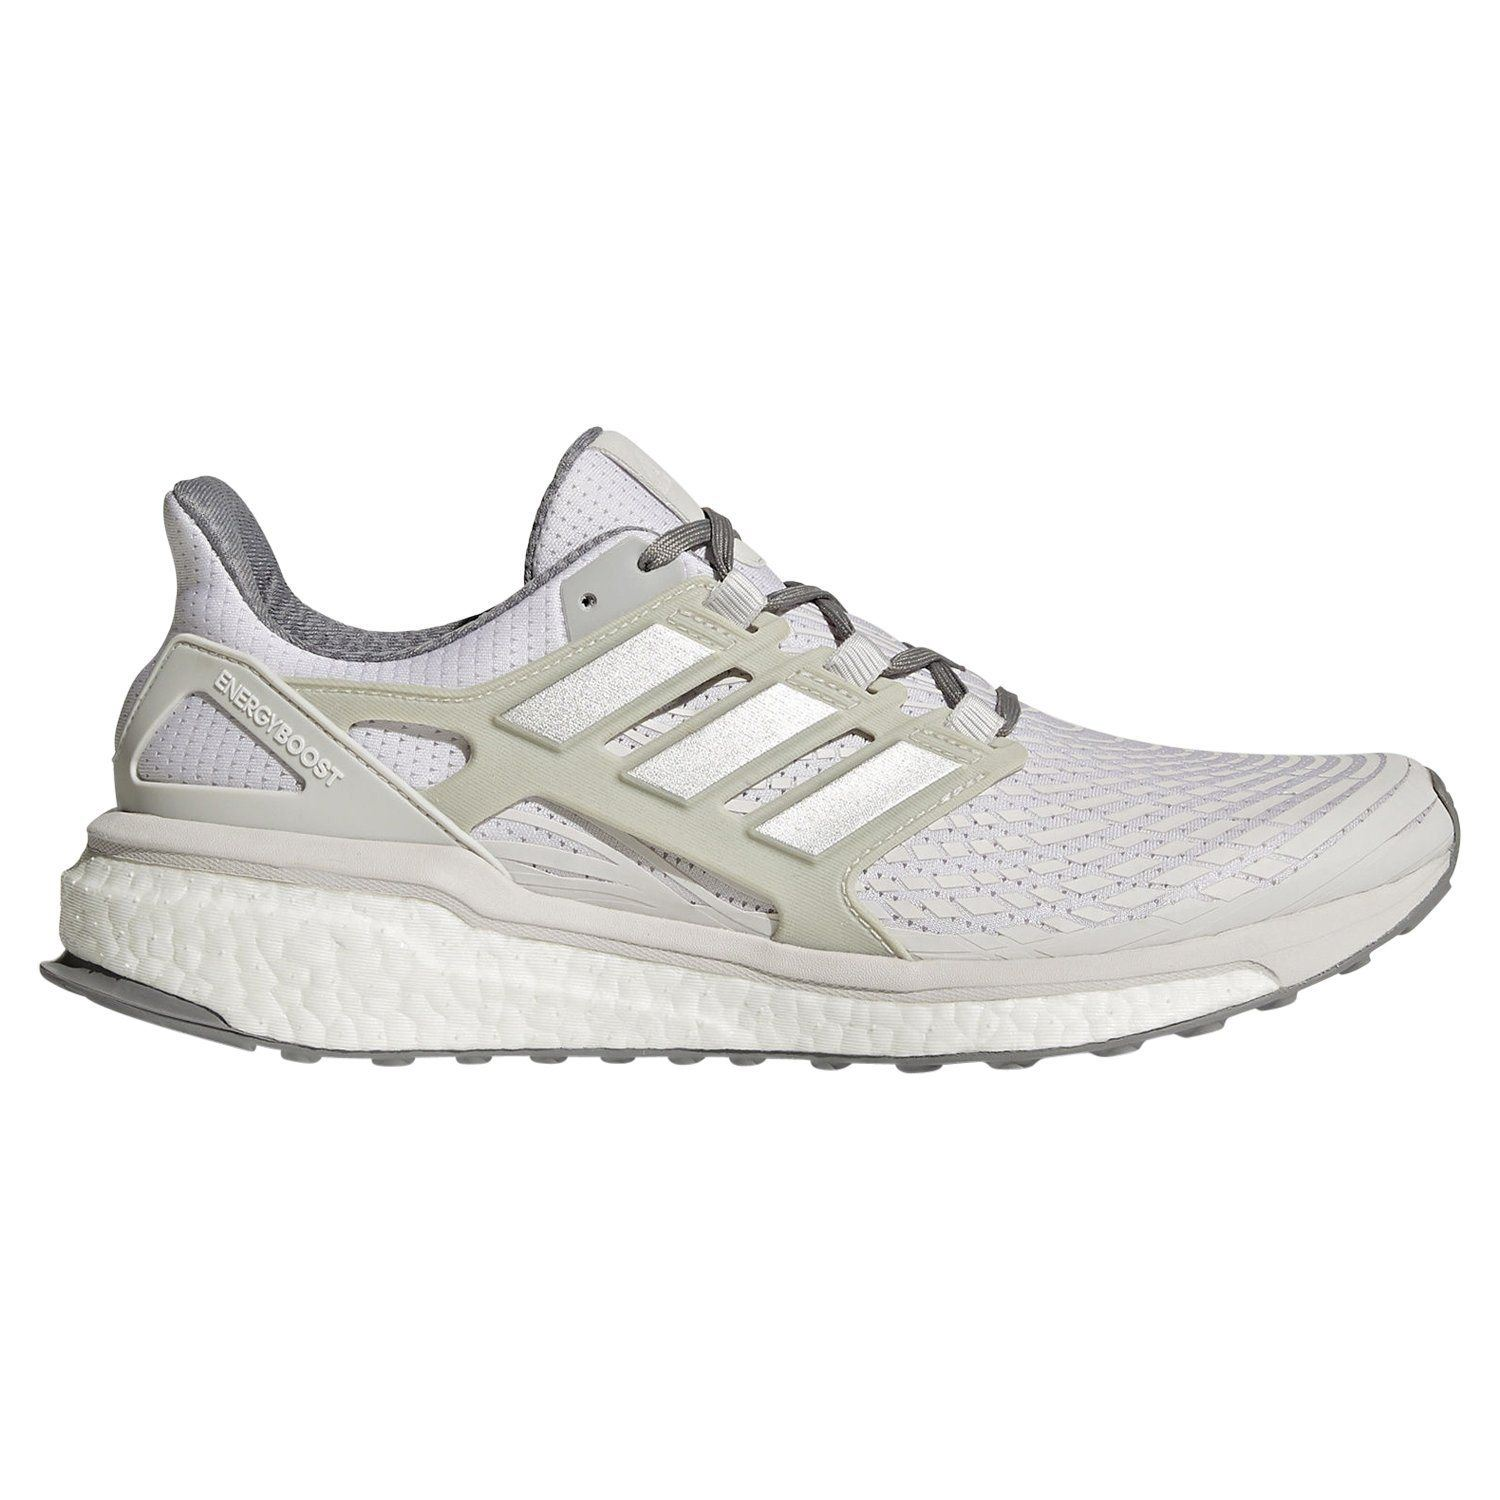 new style adfdf c0e70 Details about adidas MEN S ENERGY BOOST RUNNING TRAINERS WHITE RUNNING  COMFY SNEAKERS SHOE NEW